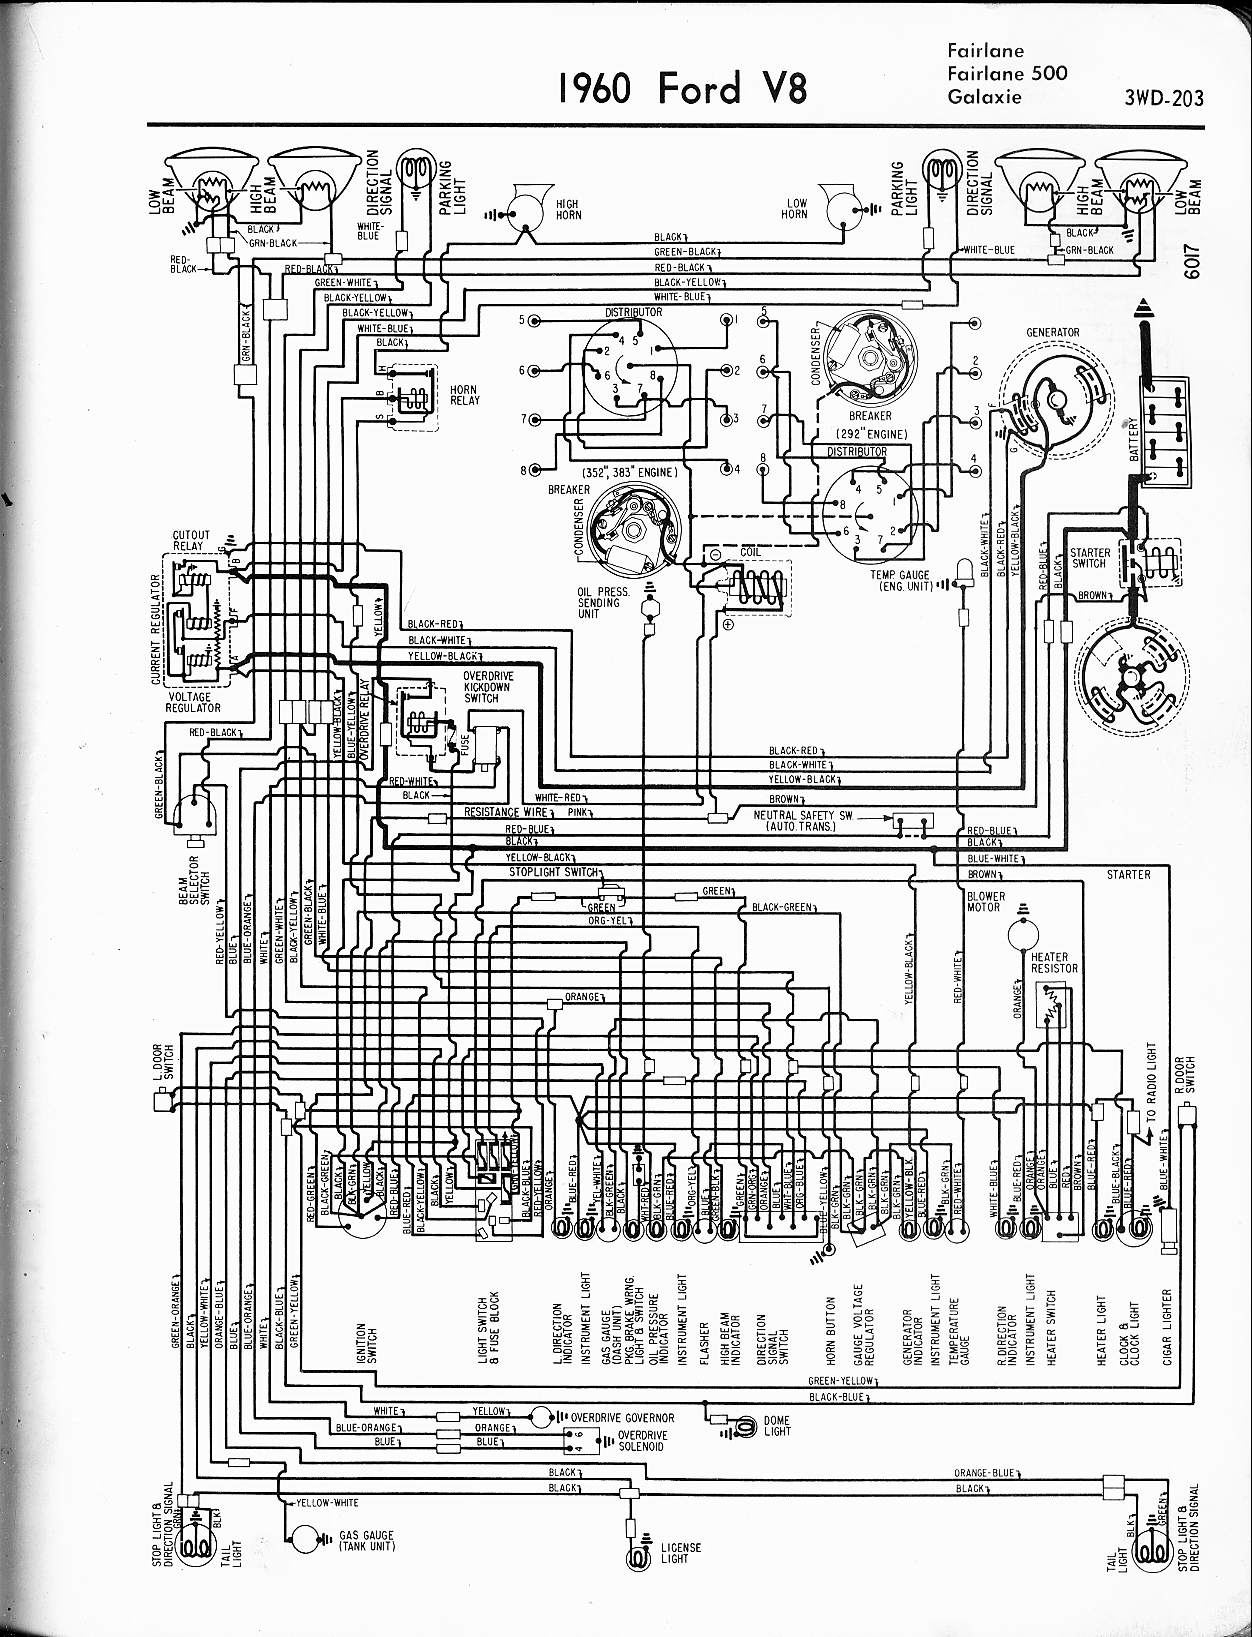 1960 S2 Saloon Wiring Diagram Diagrams 1937 Chevy Radio Schematic Harness